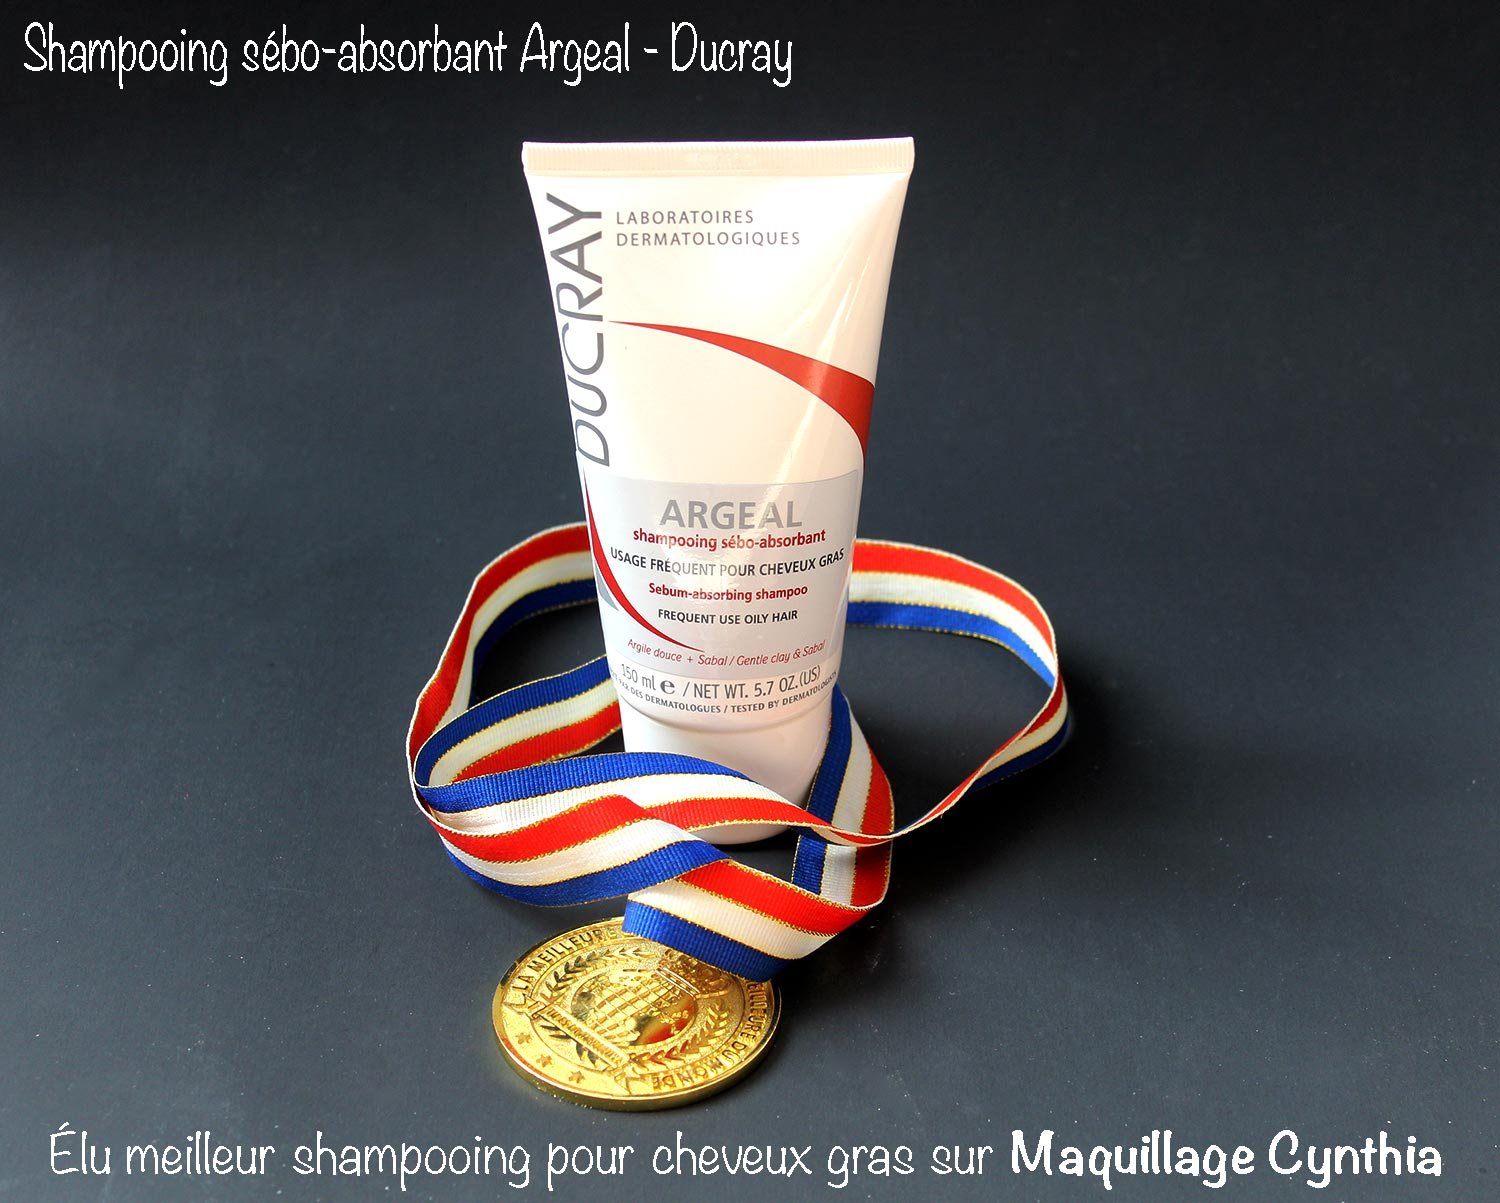 shampooing sbo absorbant argeal de ducray - Meilleur Shampoing Pour Cheveux Colors